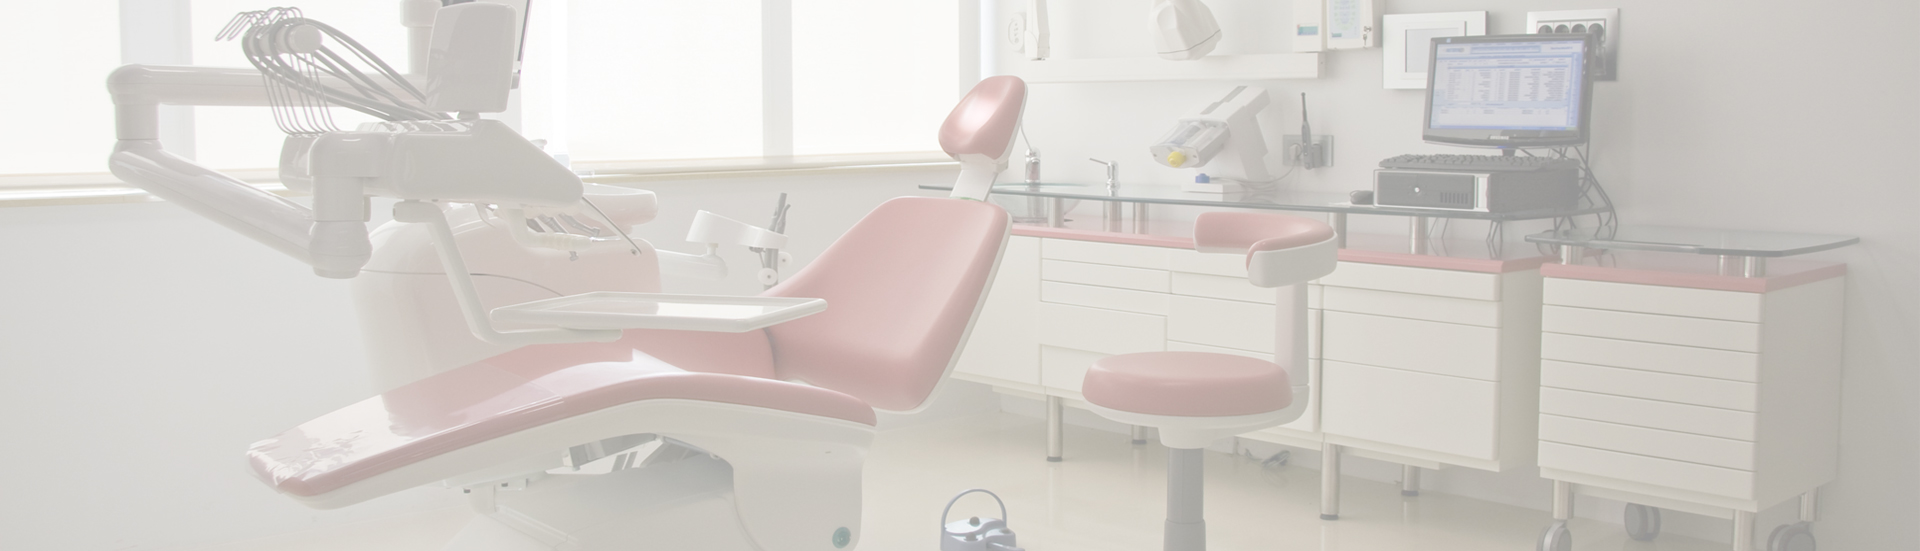 Equipamiento Dental Fijodent # Muebles Podologicos